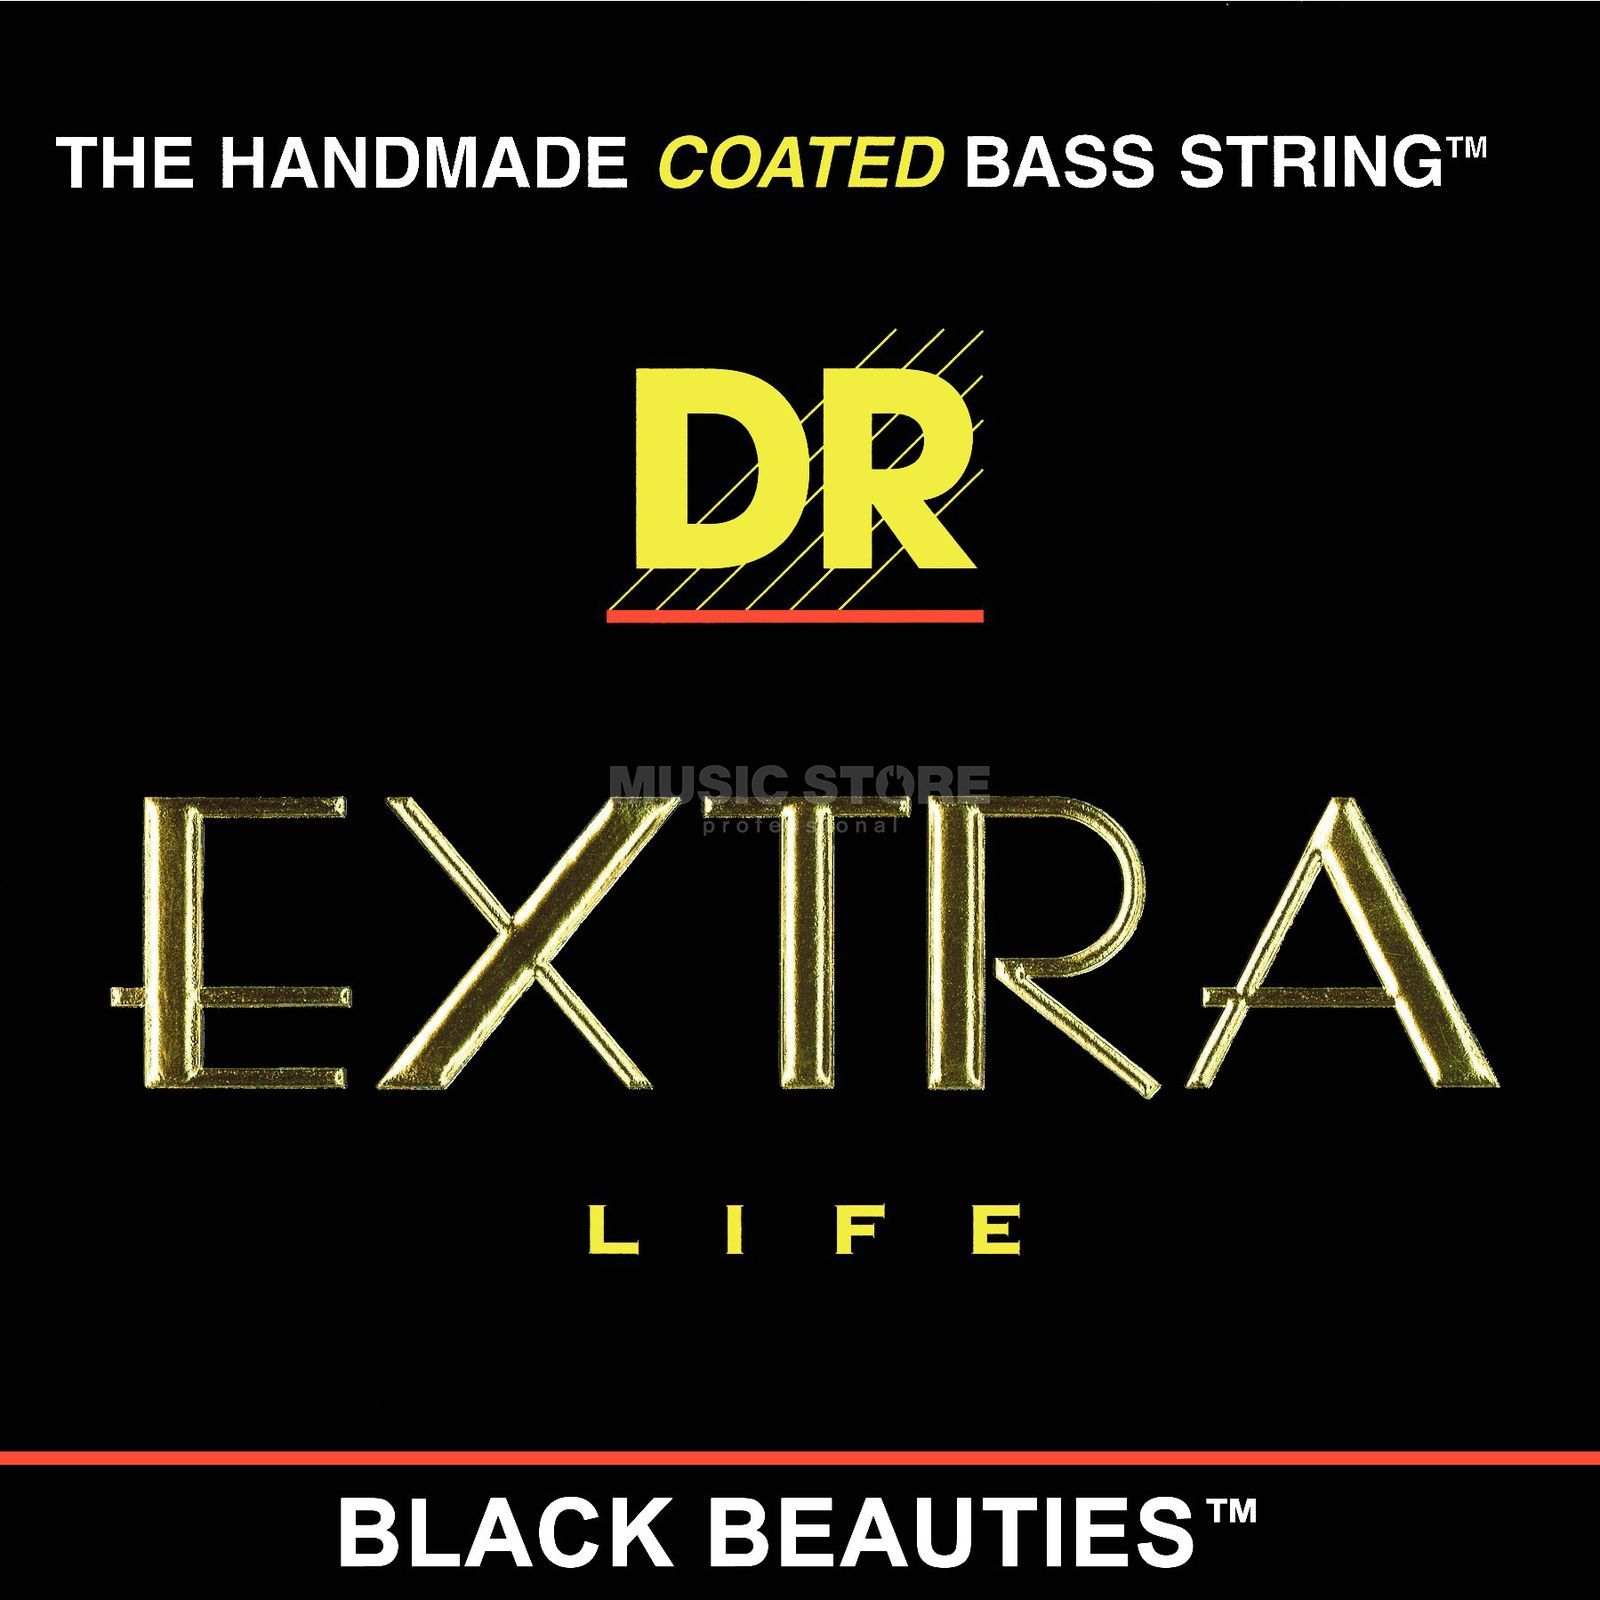 DR Bass Strings Set of 4: 50-110 Extra-Life Black Beauties BKBT-50 Zdjęcie produktu